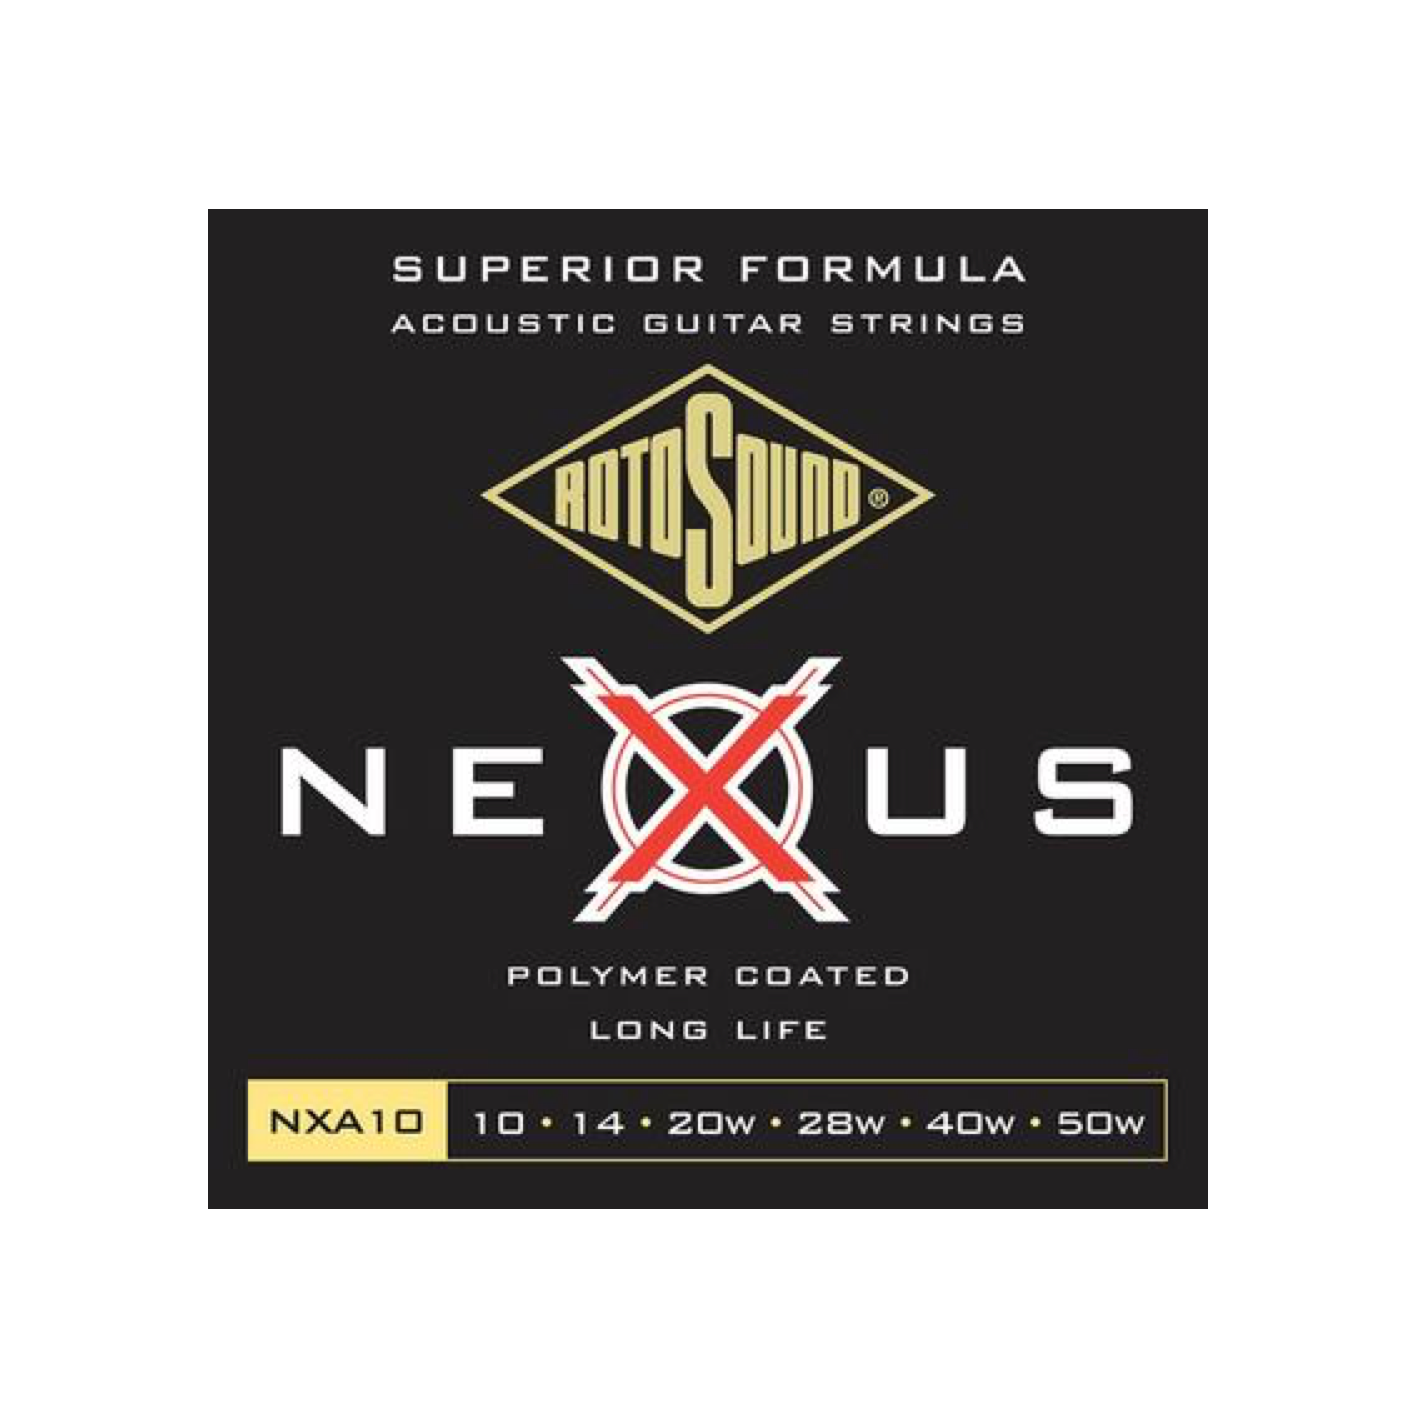 Rotosound Nexus Polymer Coated Acoustic Guitar Strings (Various Gauges)